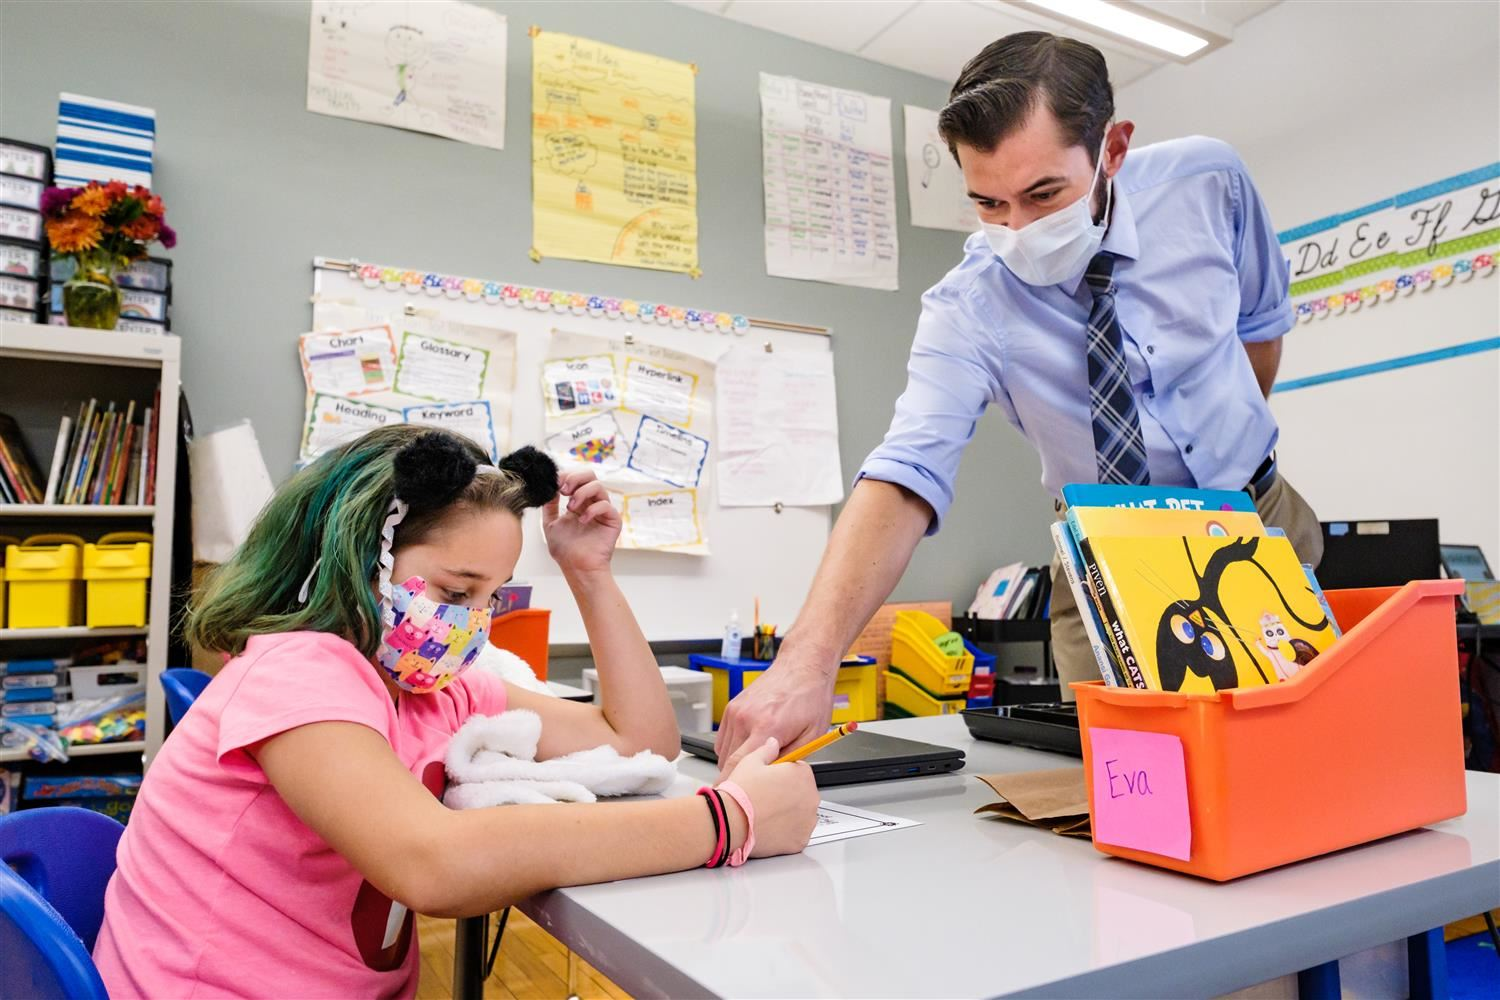 teacher at Wiley helps a student